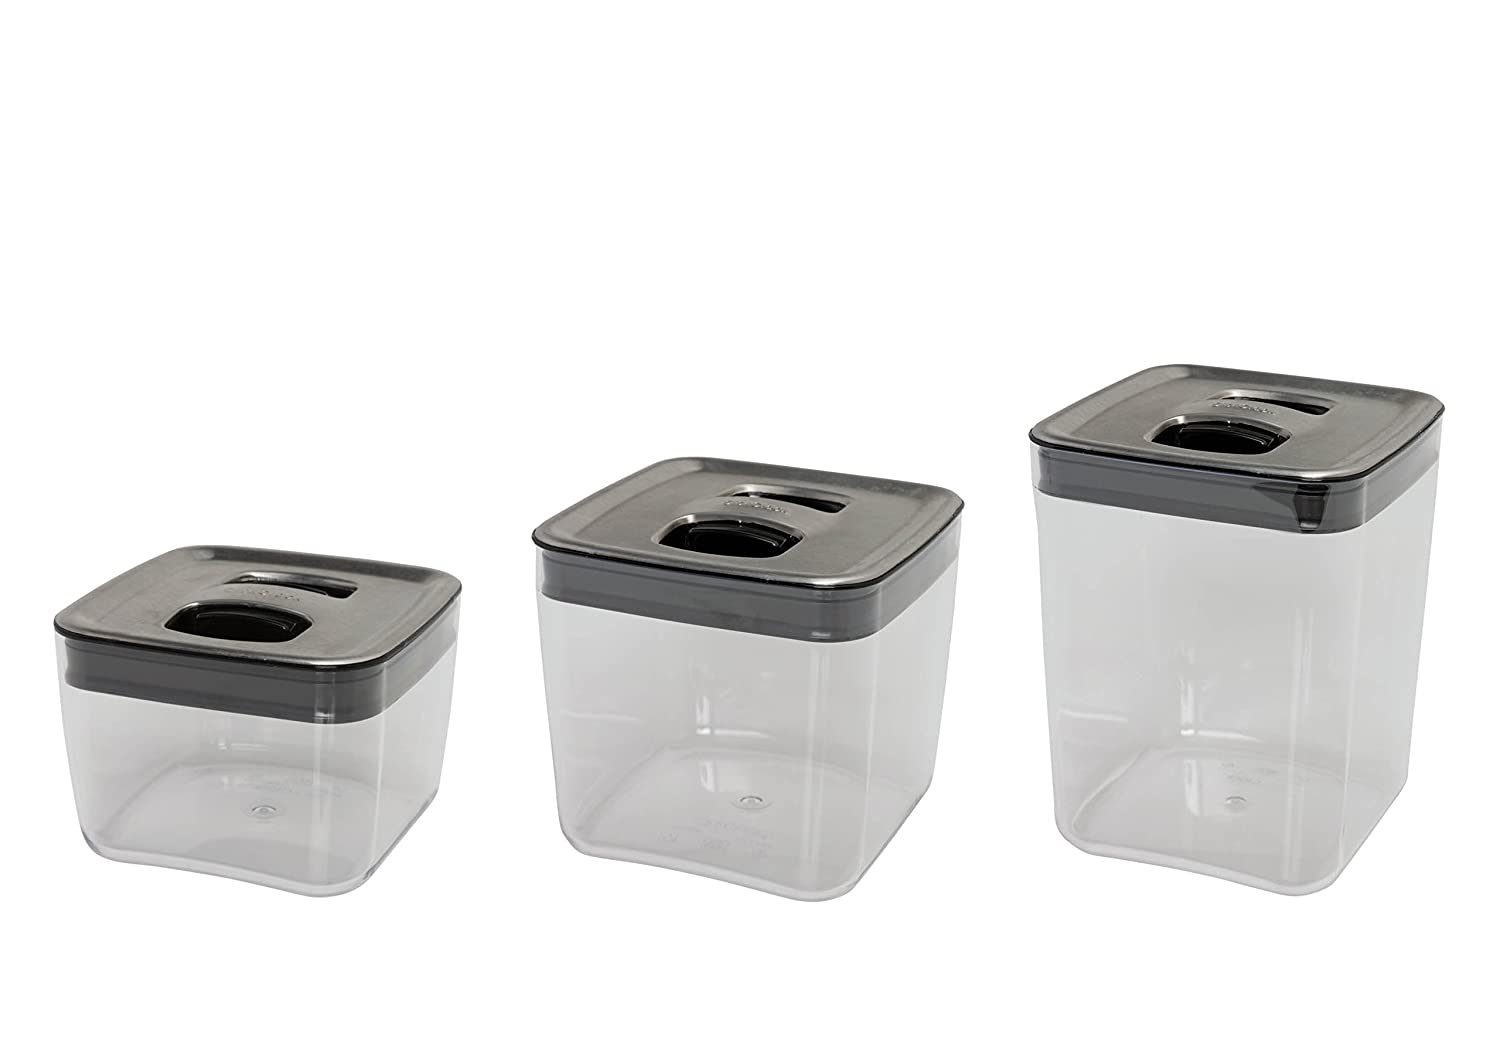 amazon com click clack cube storage containers with stainless amazon com click clack cube storage containers with stainless steel lids set of 3 kitchen dining